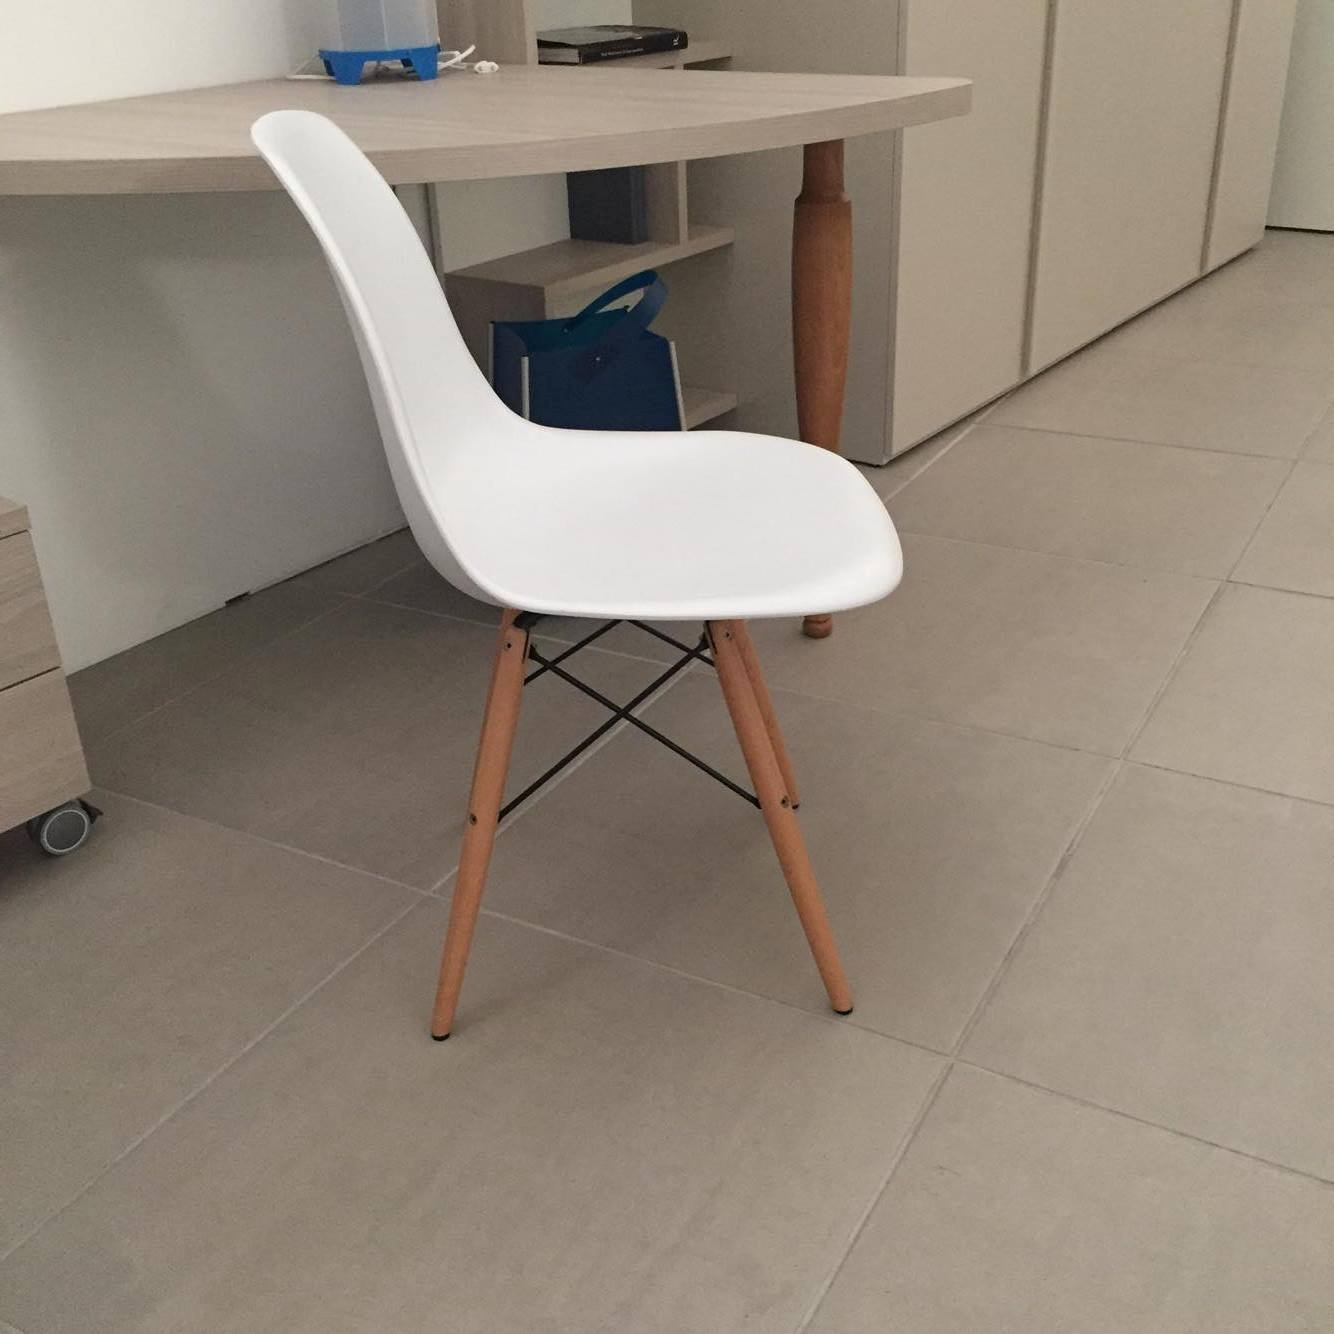 Sedie di design outlet outlet with sedie di design outlet for Sedie bianche design